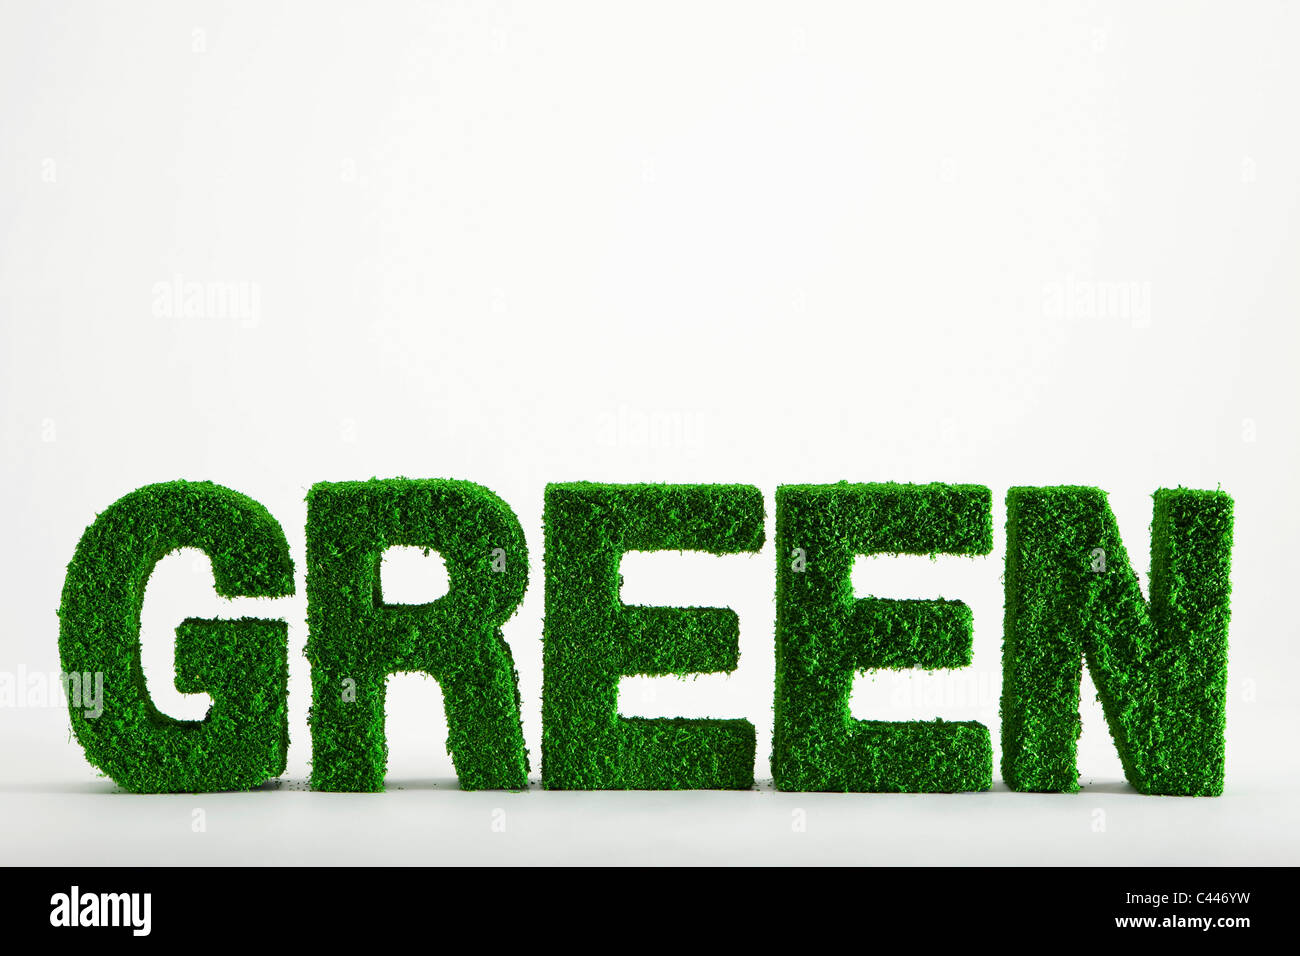 The word Green made from grass covered objects - Stock Image